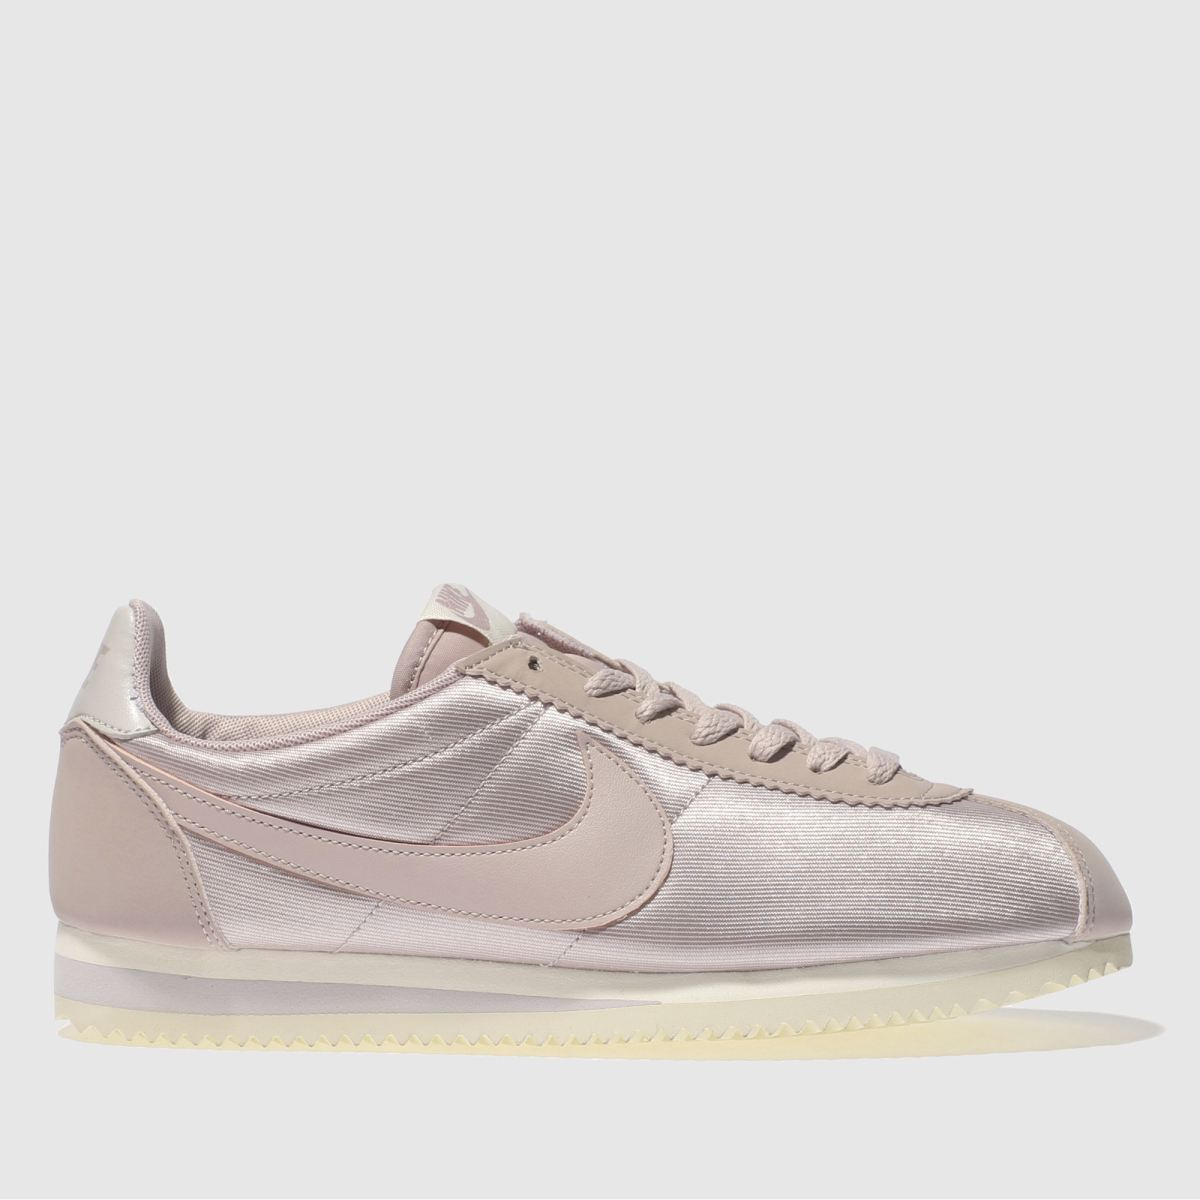 Nike Pale Pink Cortez Nylon Trainers